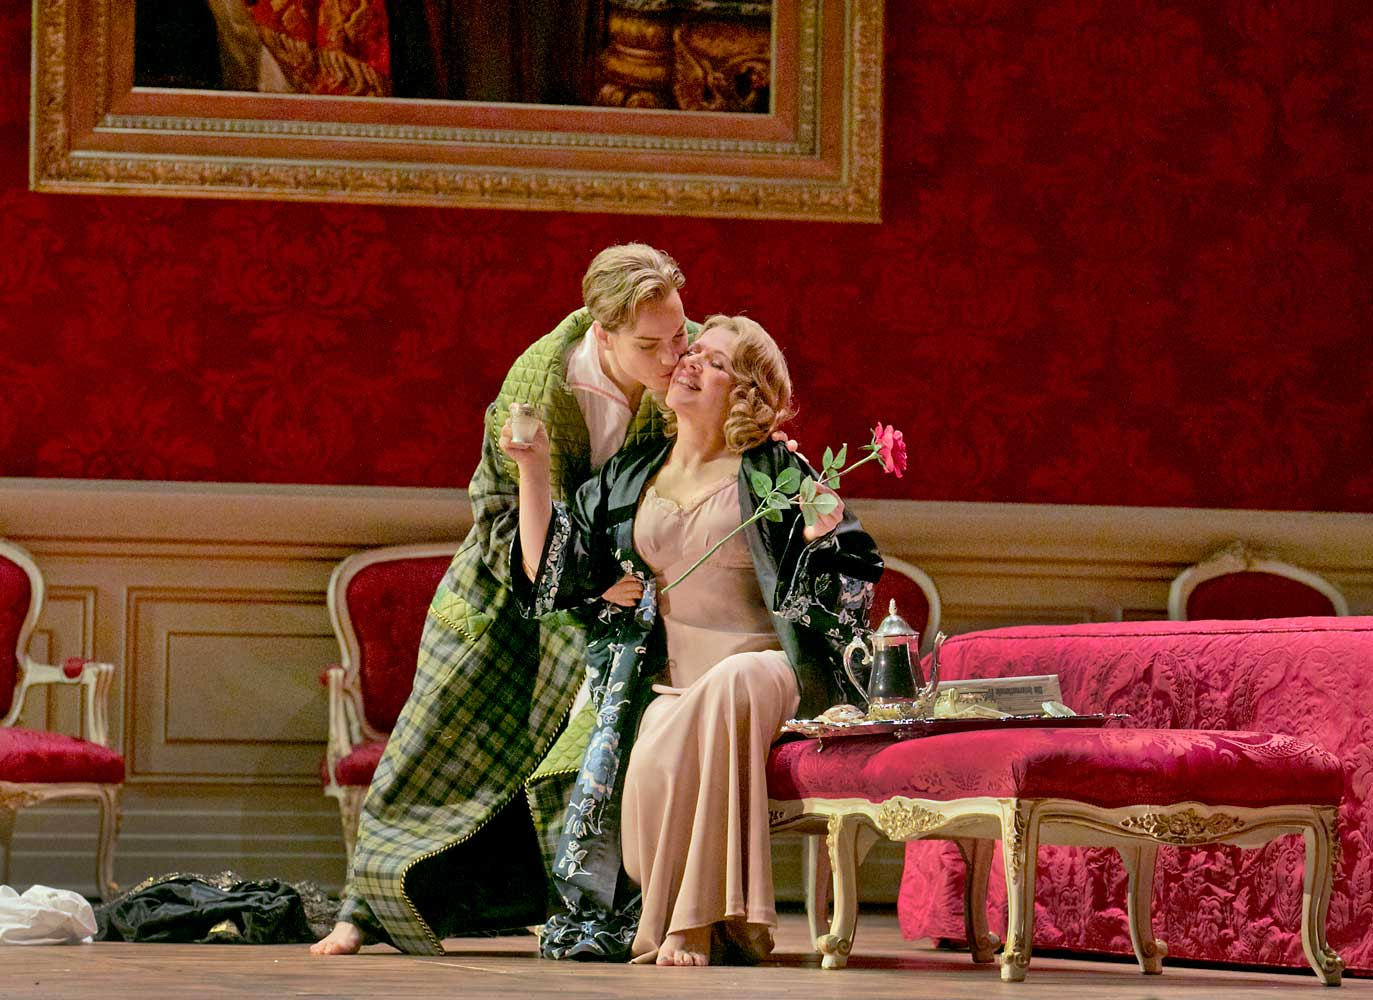 Elina Garanca as Octavian and Renée Fleming as the Marschallin in Strauss's Der Rosenkavalier. Photo by Ken Howard/Metropolitan Opera.